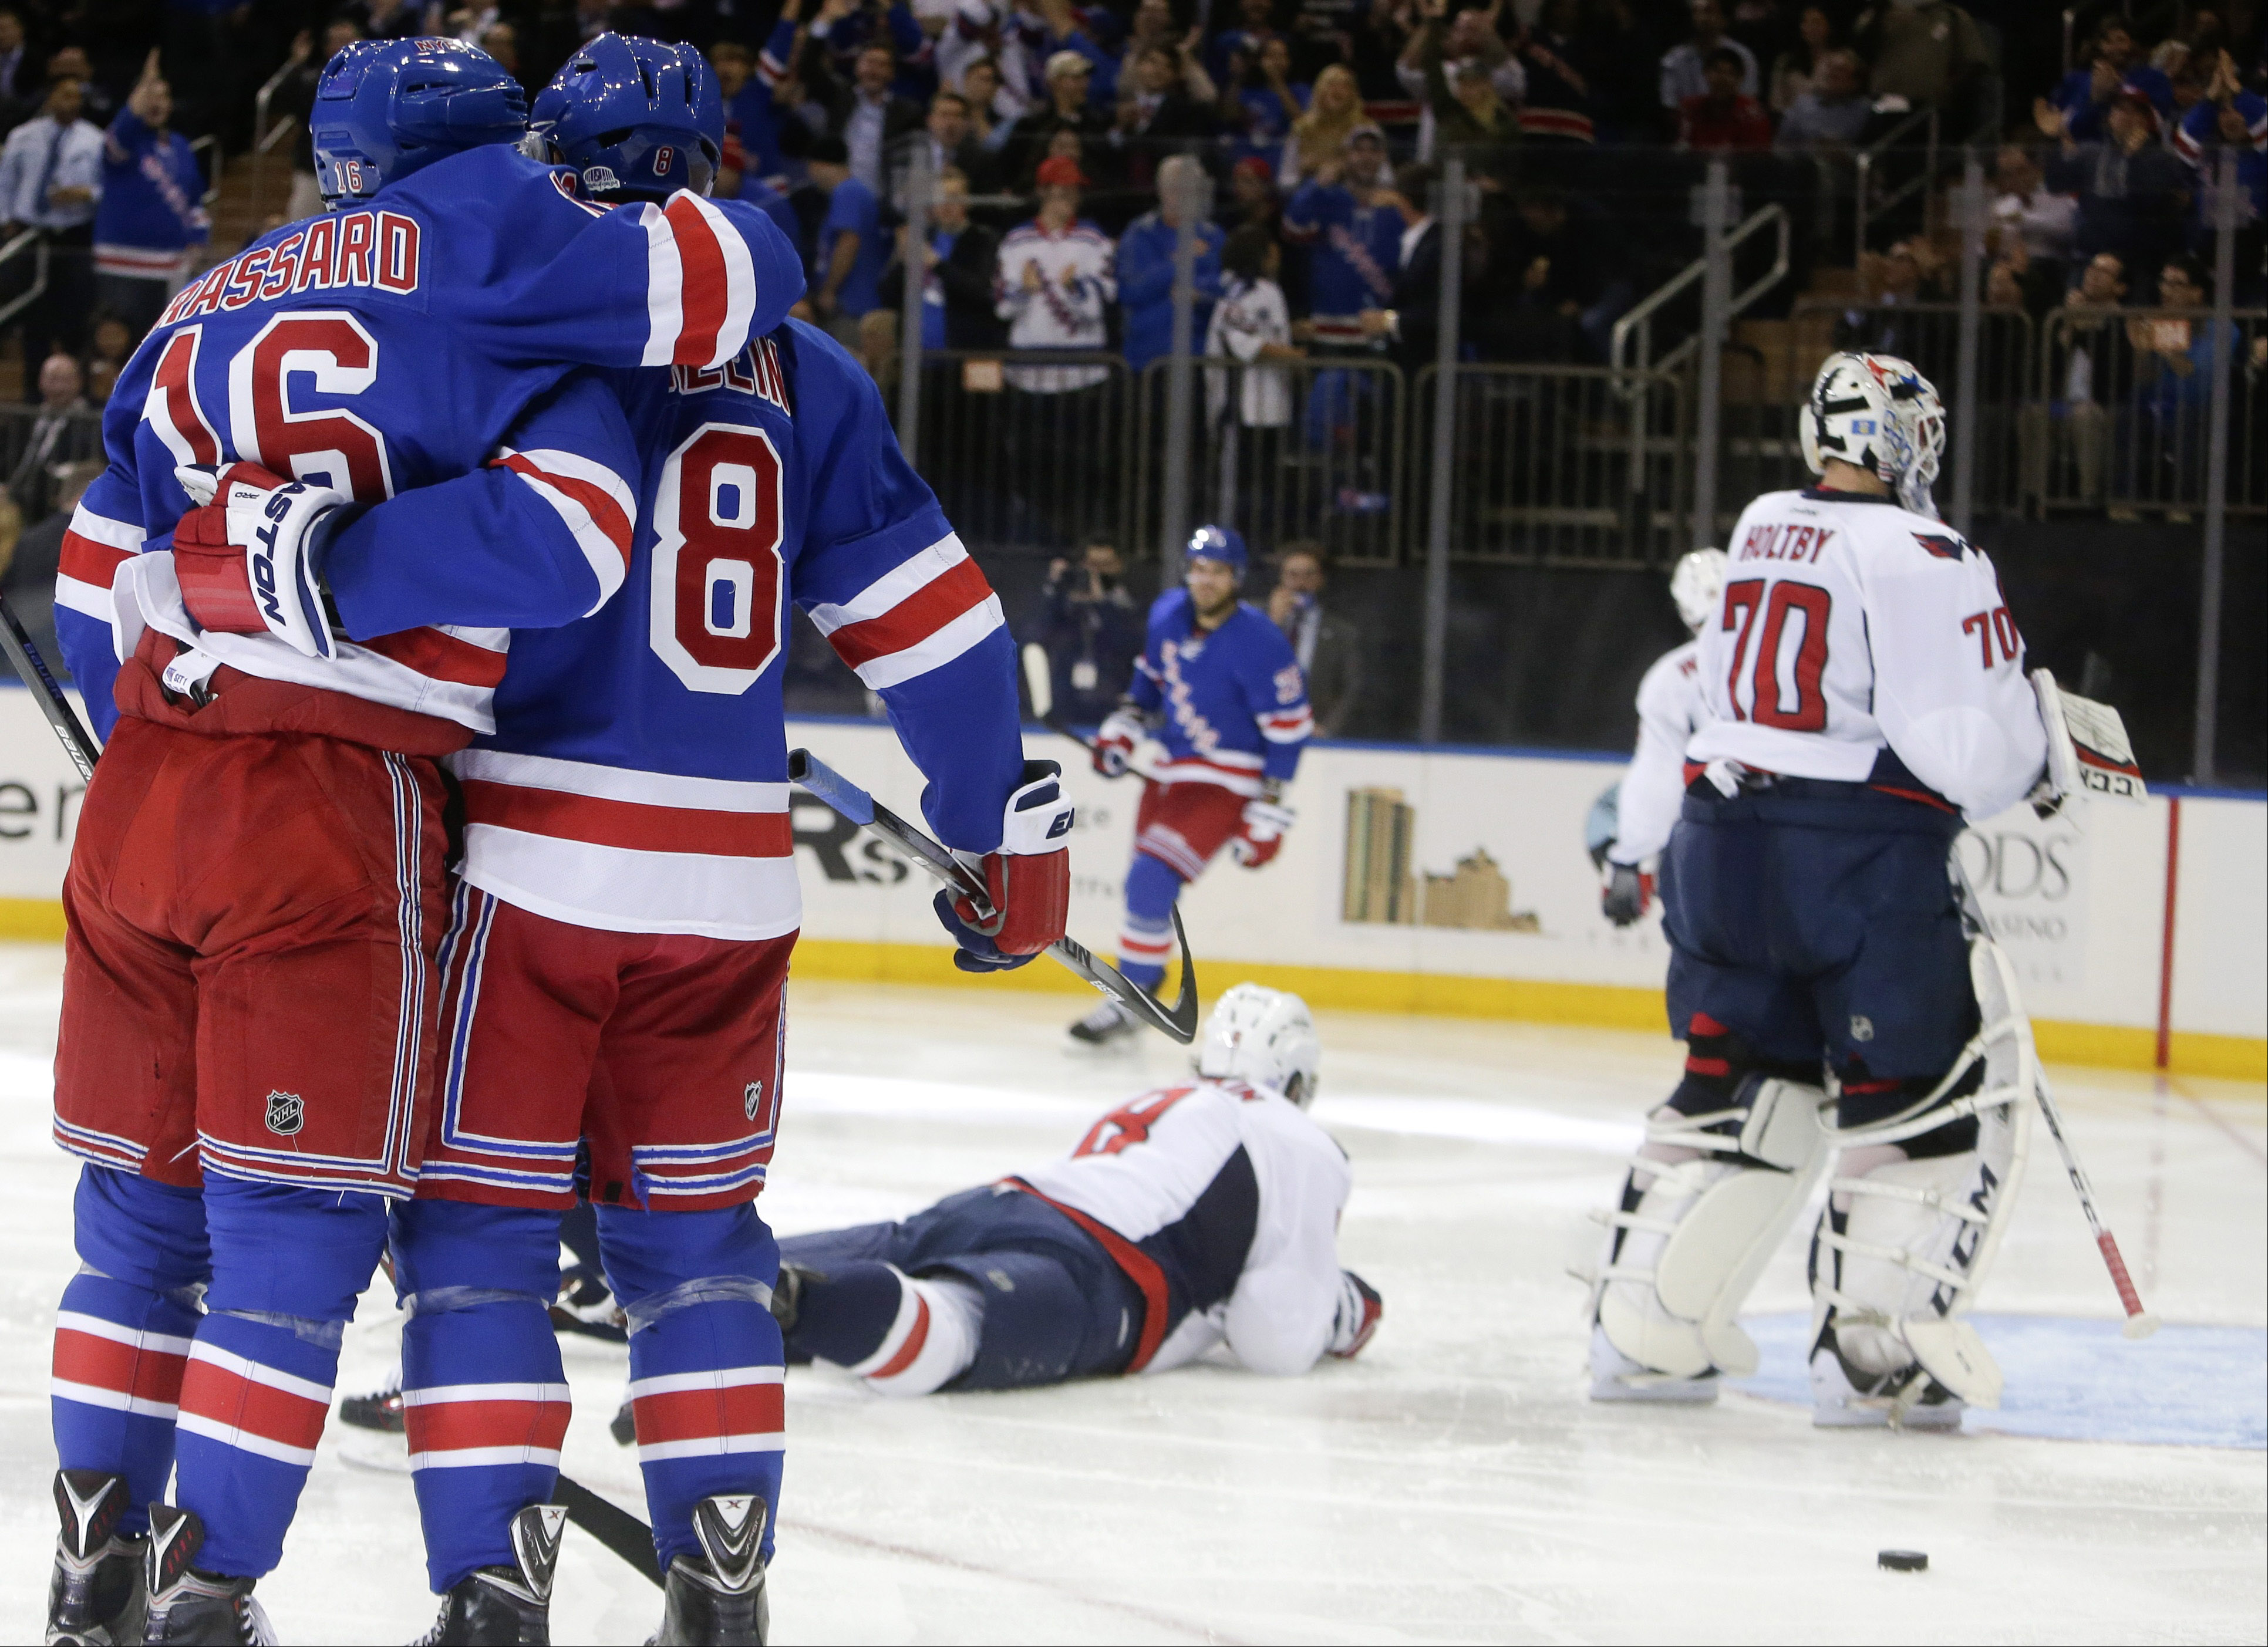 New York Rangers' Kevin Klein (8) celebrates his goal with teammate Derick Brassard (16) as Washington Capitals' Alex Ovechkin (8) and goalie Braden Holtby (70) look away during the second period of an NHL hockey game Tuesday, Nov. 3, 2015, in New York. (